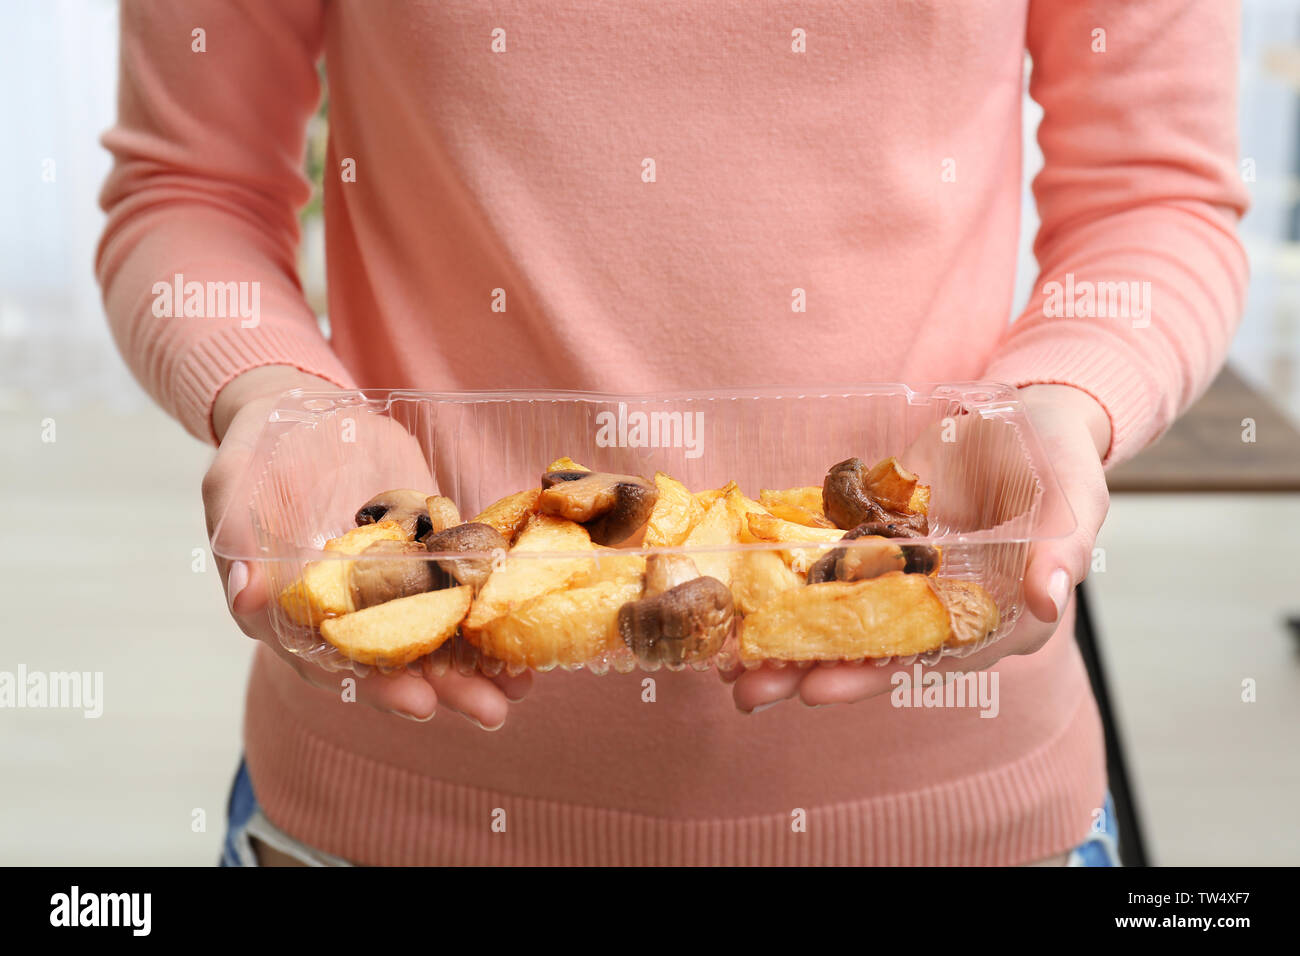 Woman holding plastic food container with tasty potato and mushrooms, closeup - Stock Image